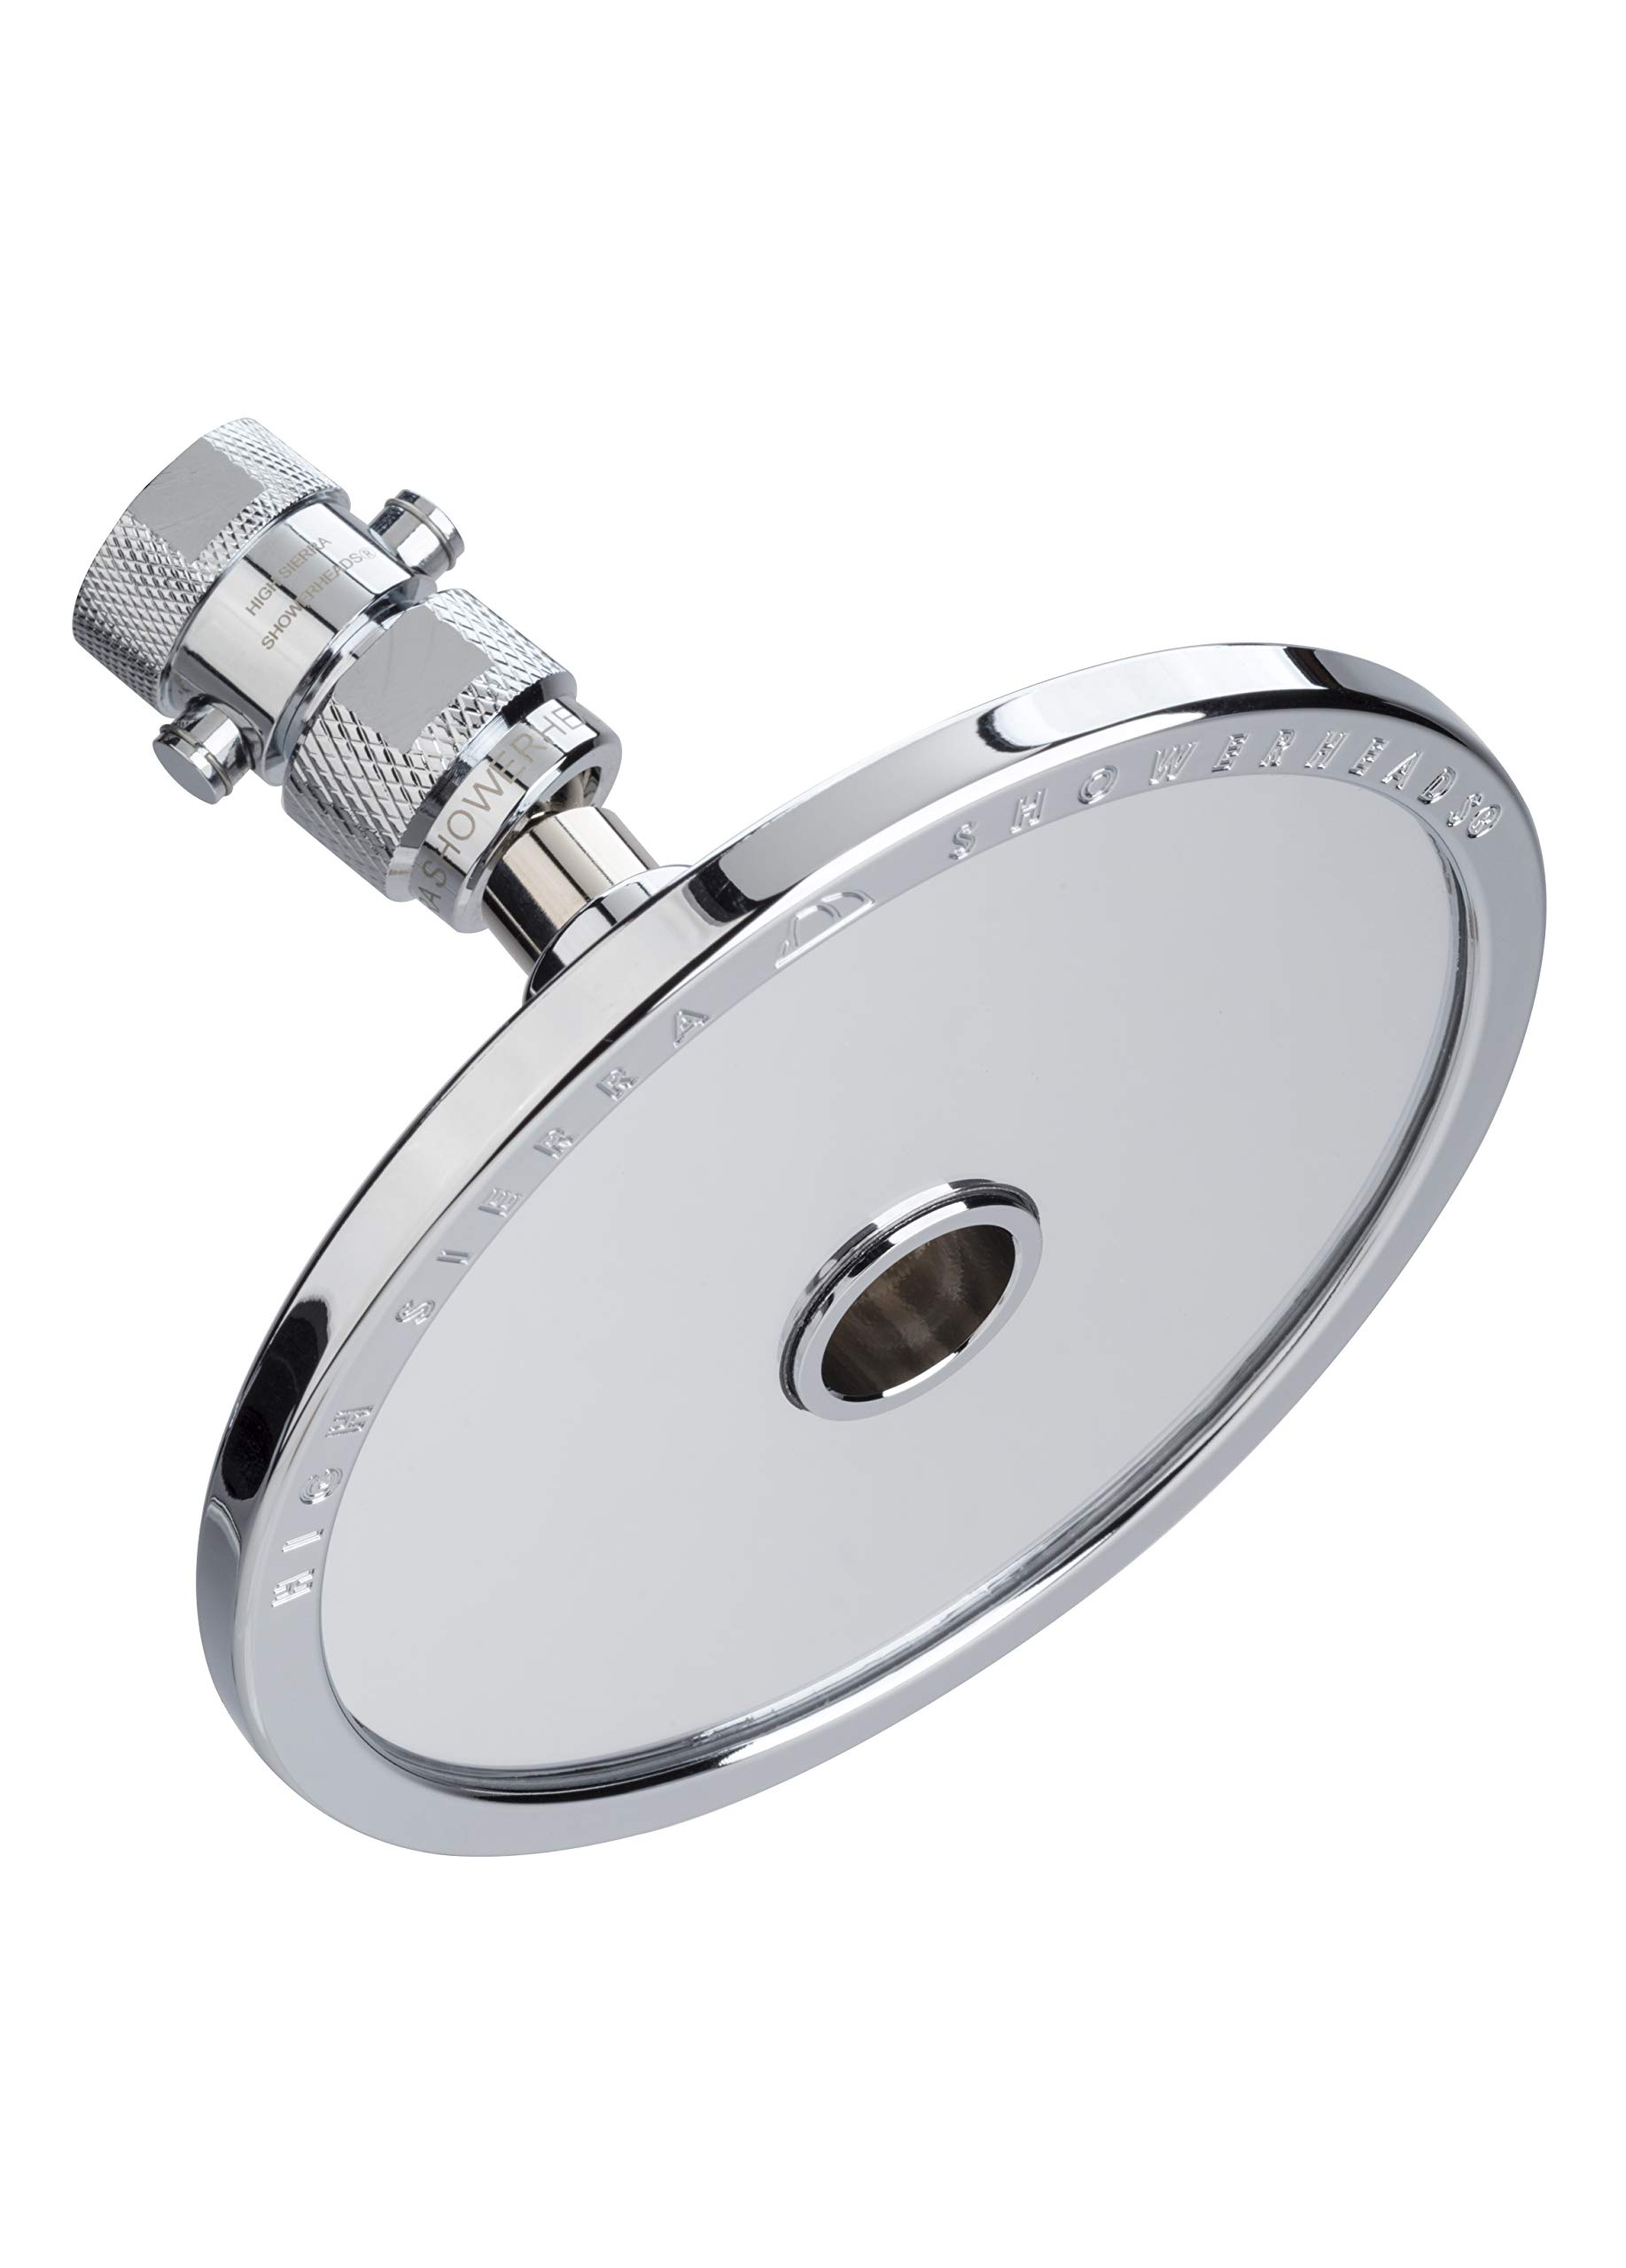 High Sierra's NEW ''Reflections'' Shower Head and Fogless Shaving Mirror In One. Made of Solid Aluminum that Naturally Heats Up While Showering. Guaranteed to Never Fog! by High Sierra Showerheads (Image #1)